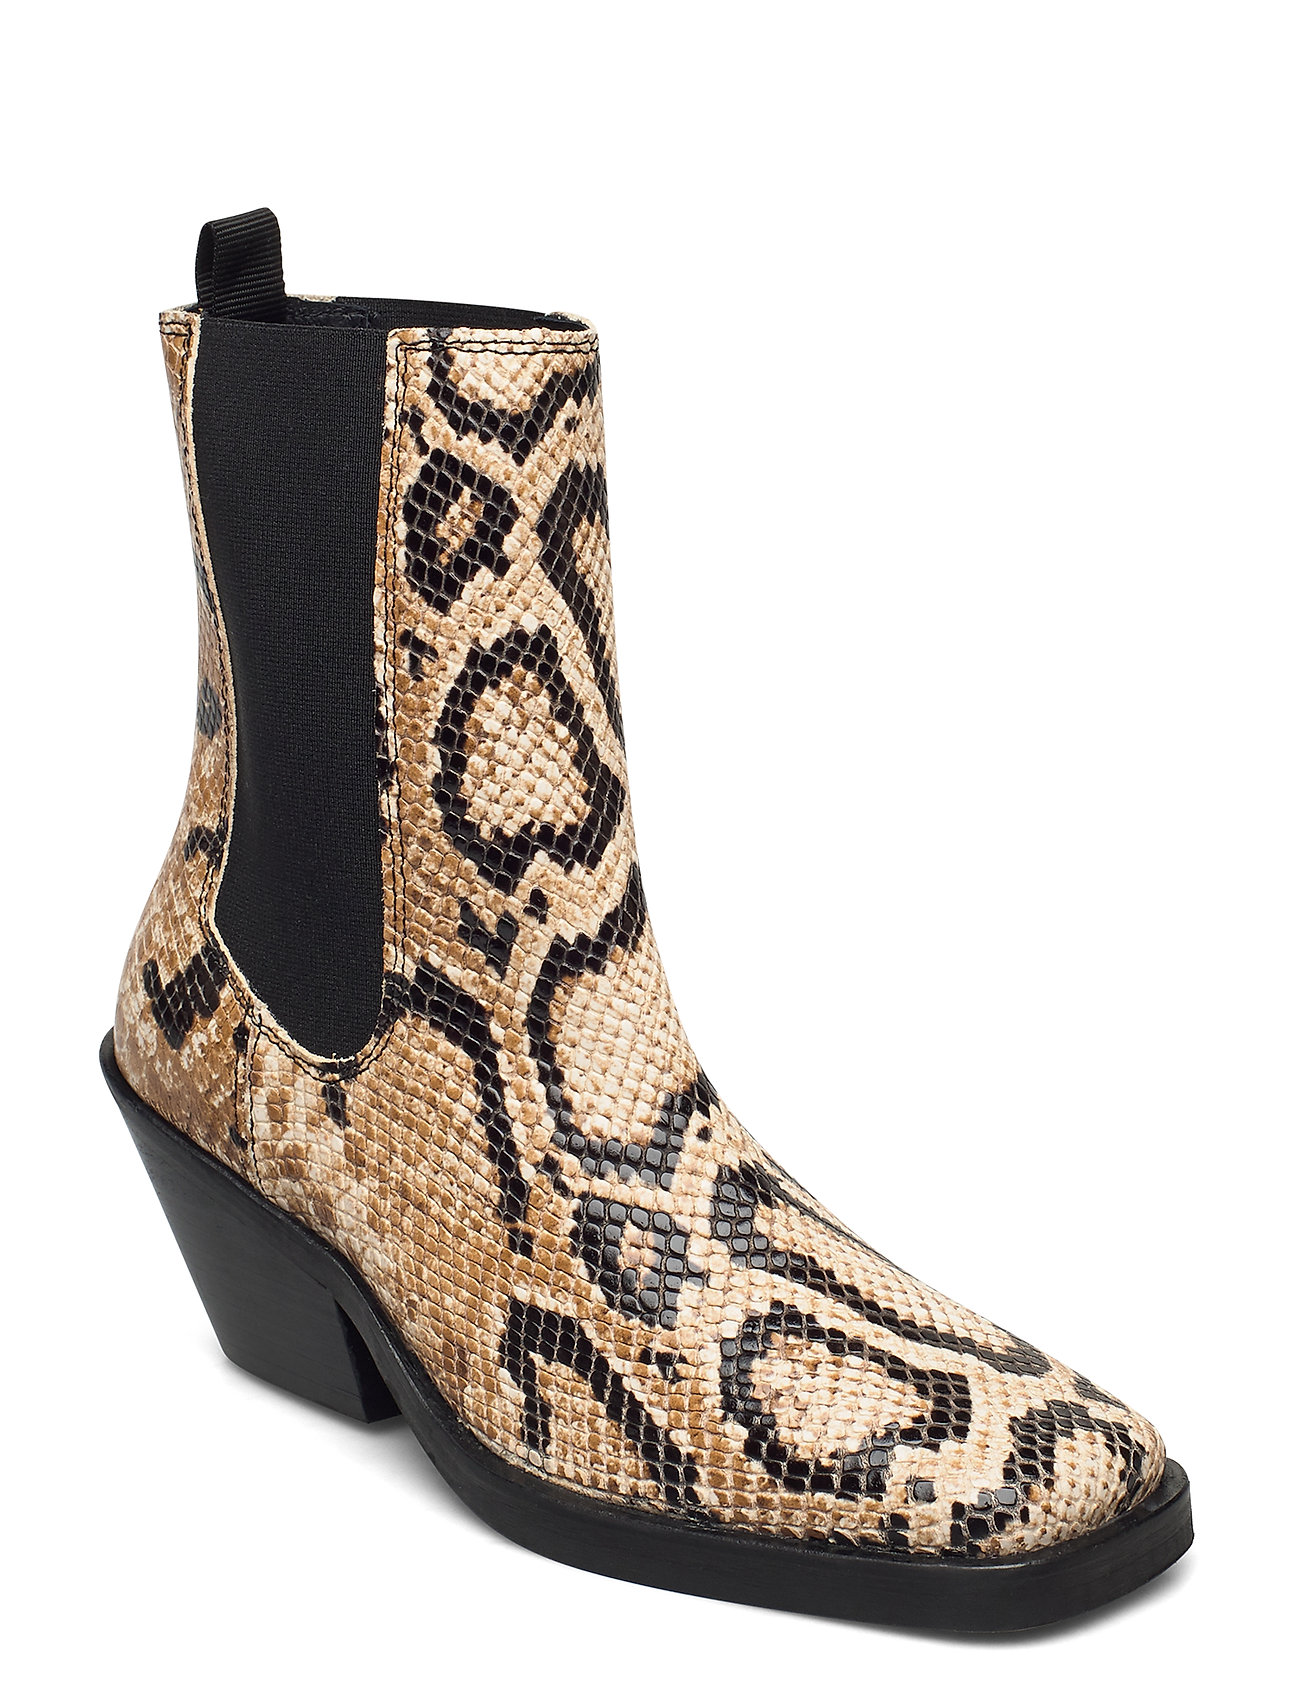 Image of Slfava Snake Leather Chelsea Boot B Shoes Boots Ankle Boots Ankle Boot - Heel Beige Selected Femme (3440209295)